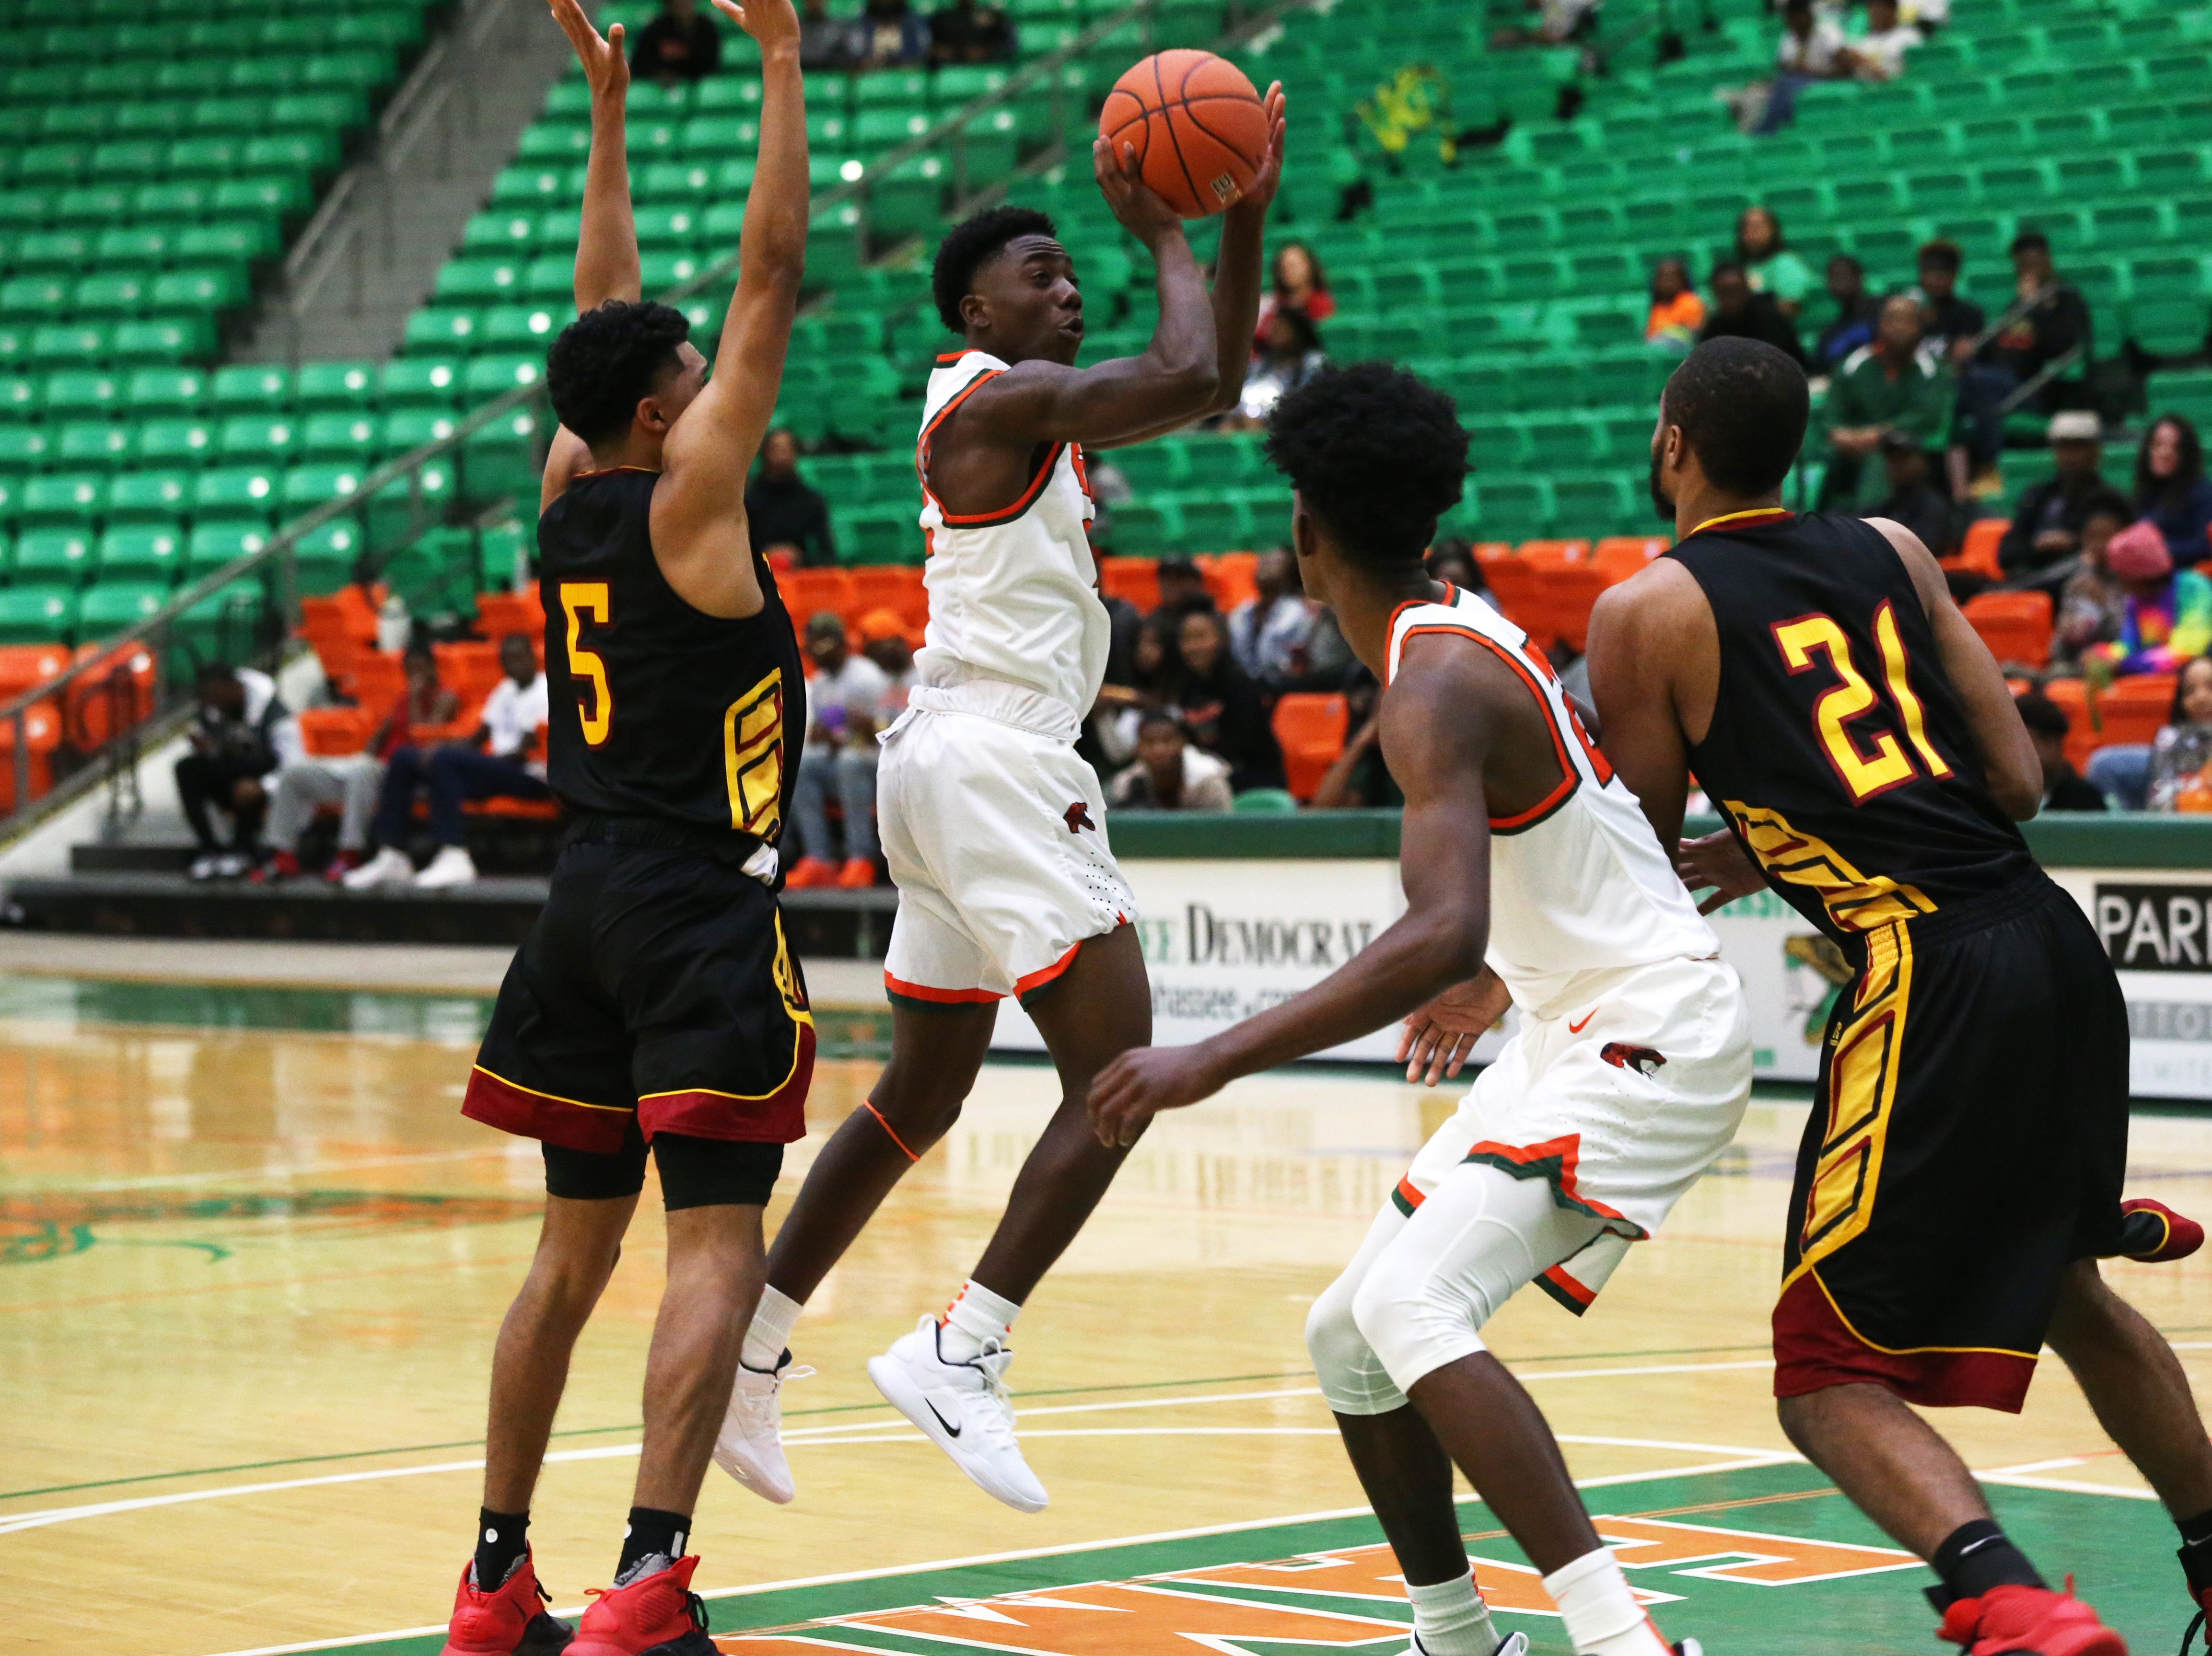 Florida A&M Rattlers guard Kamron Reaves (2) goes for the shot as the FAMU Rattlers take on the Tuskegee Golden Tigers in their first home game of the season in the Lawson Center, Saturday, Nov. 10, 2018.